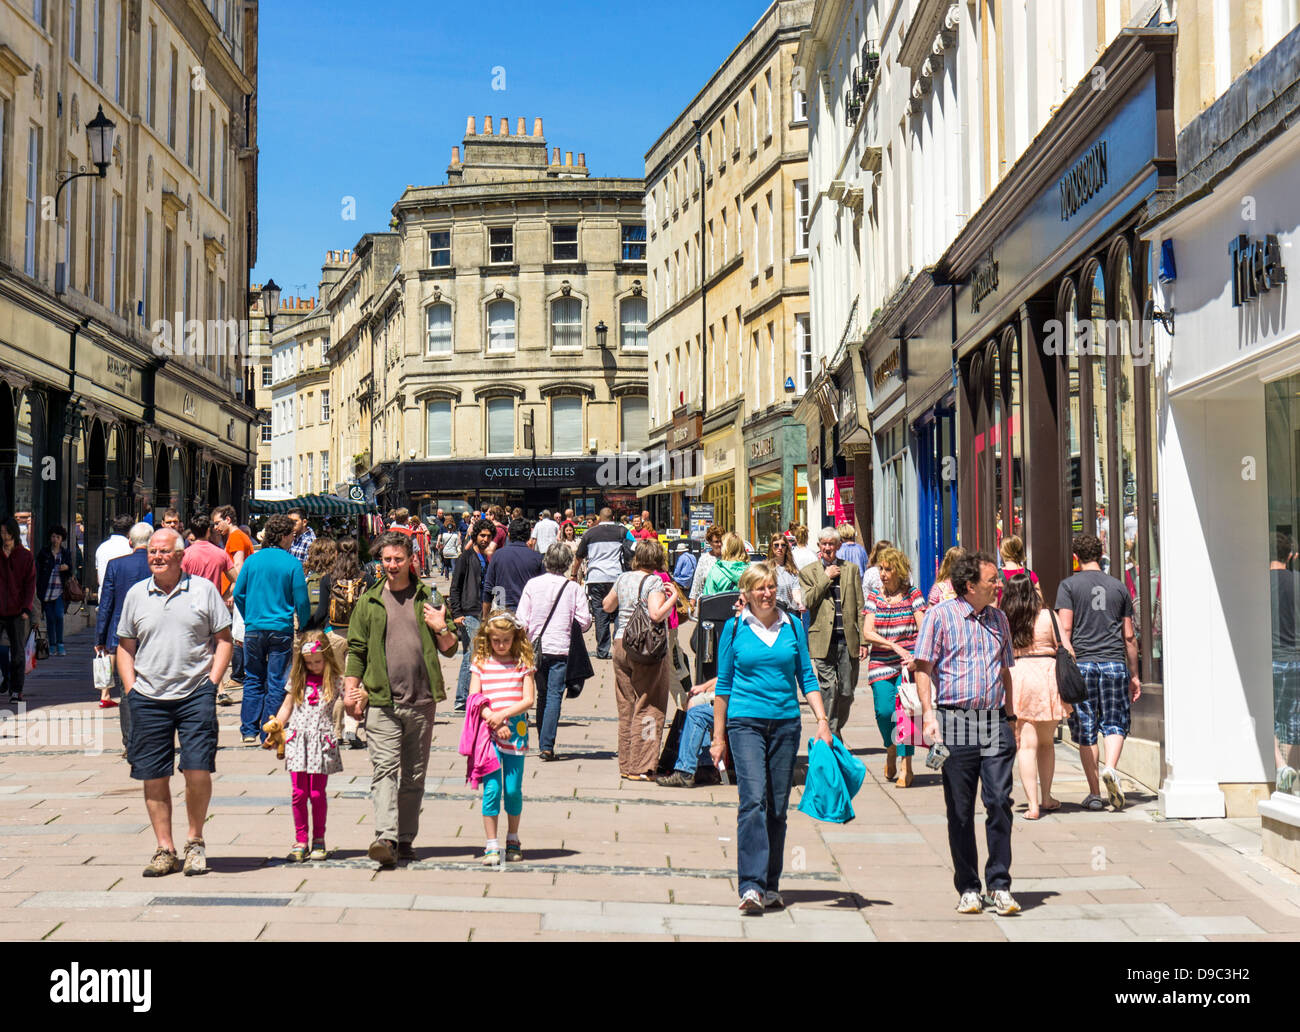 People shopping in Bath city centre, Somerset, England, UK - Stock Image